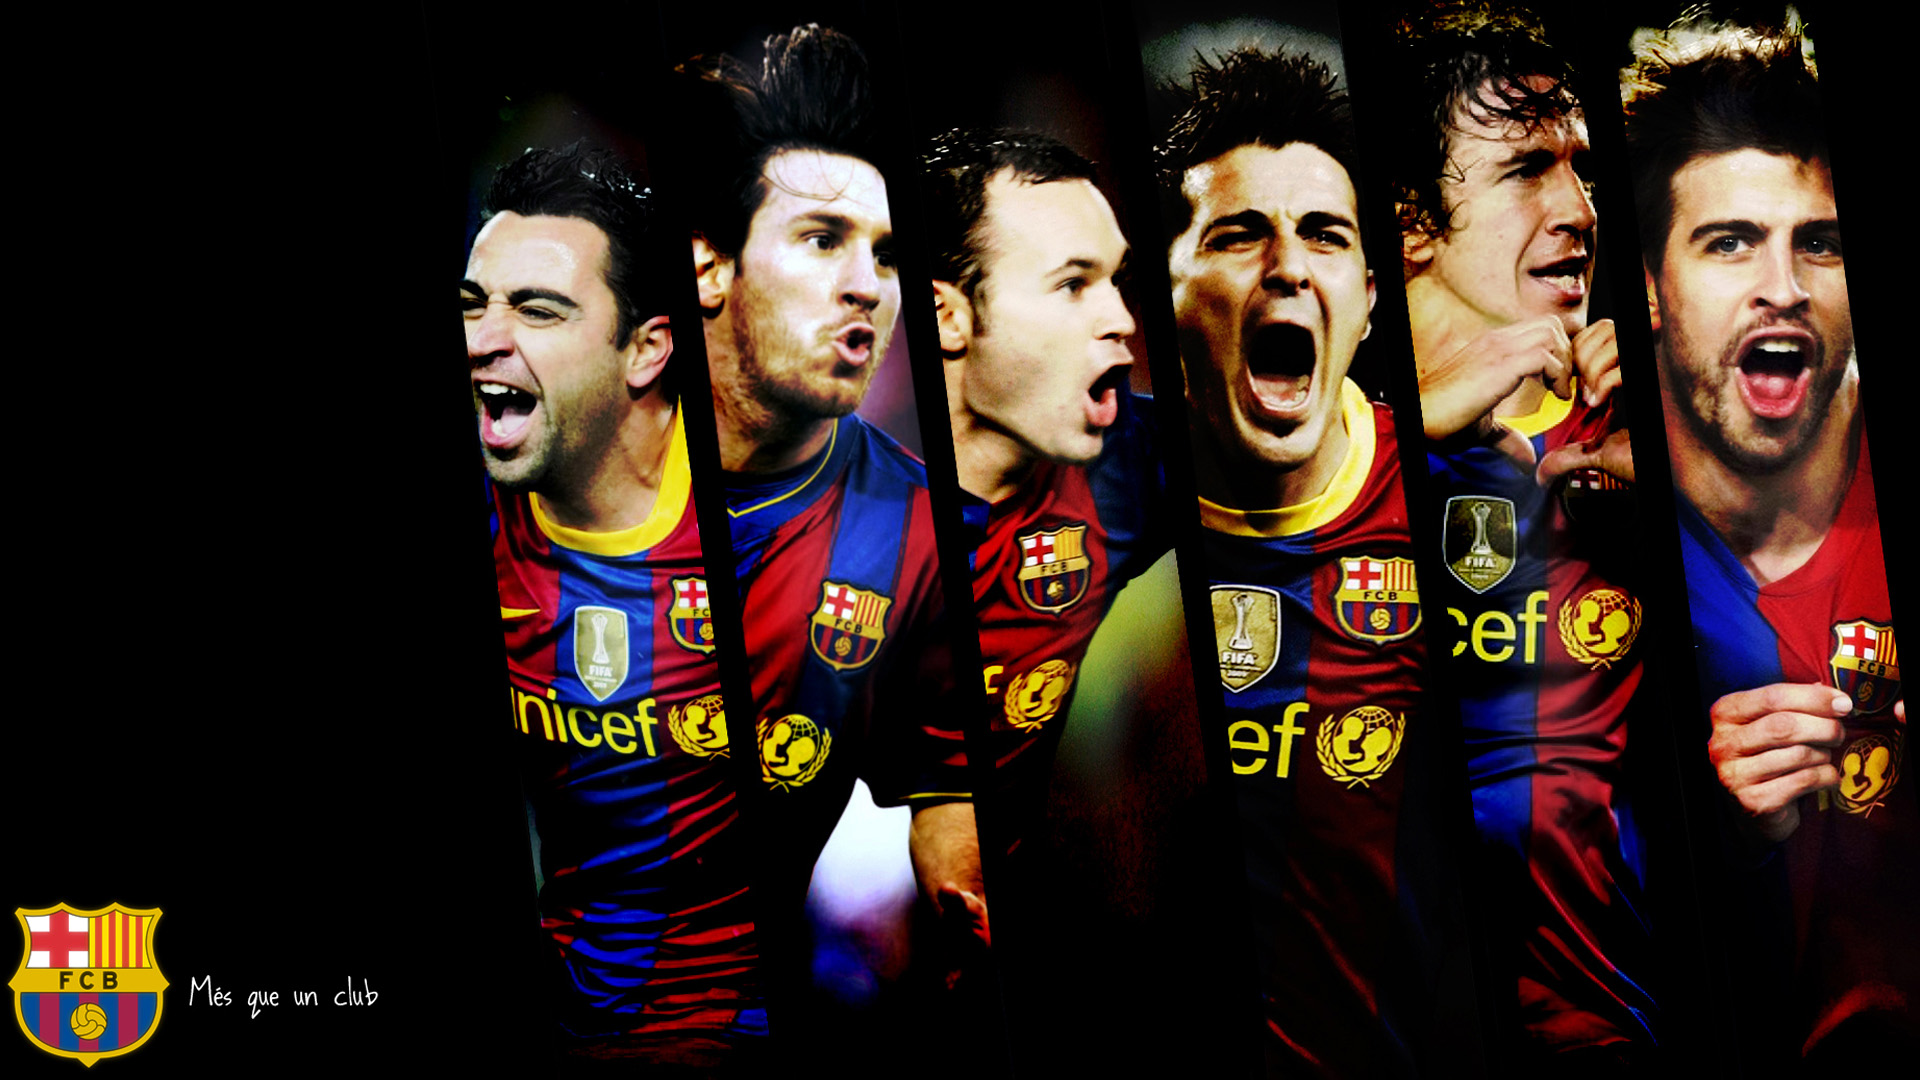 barca wallpapers download